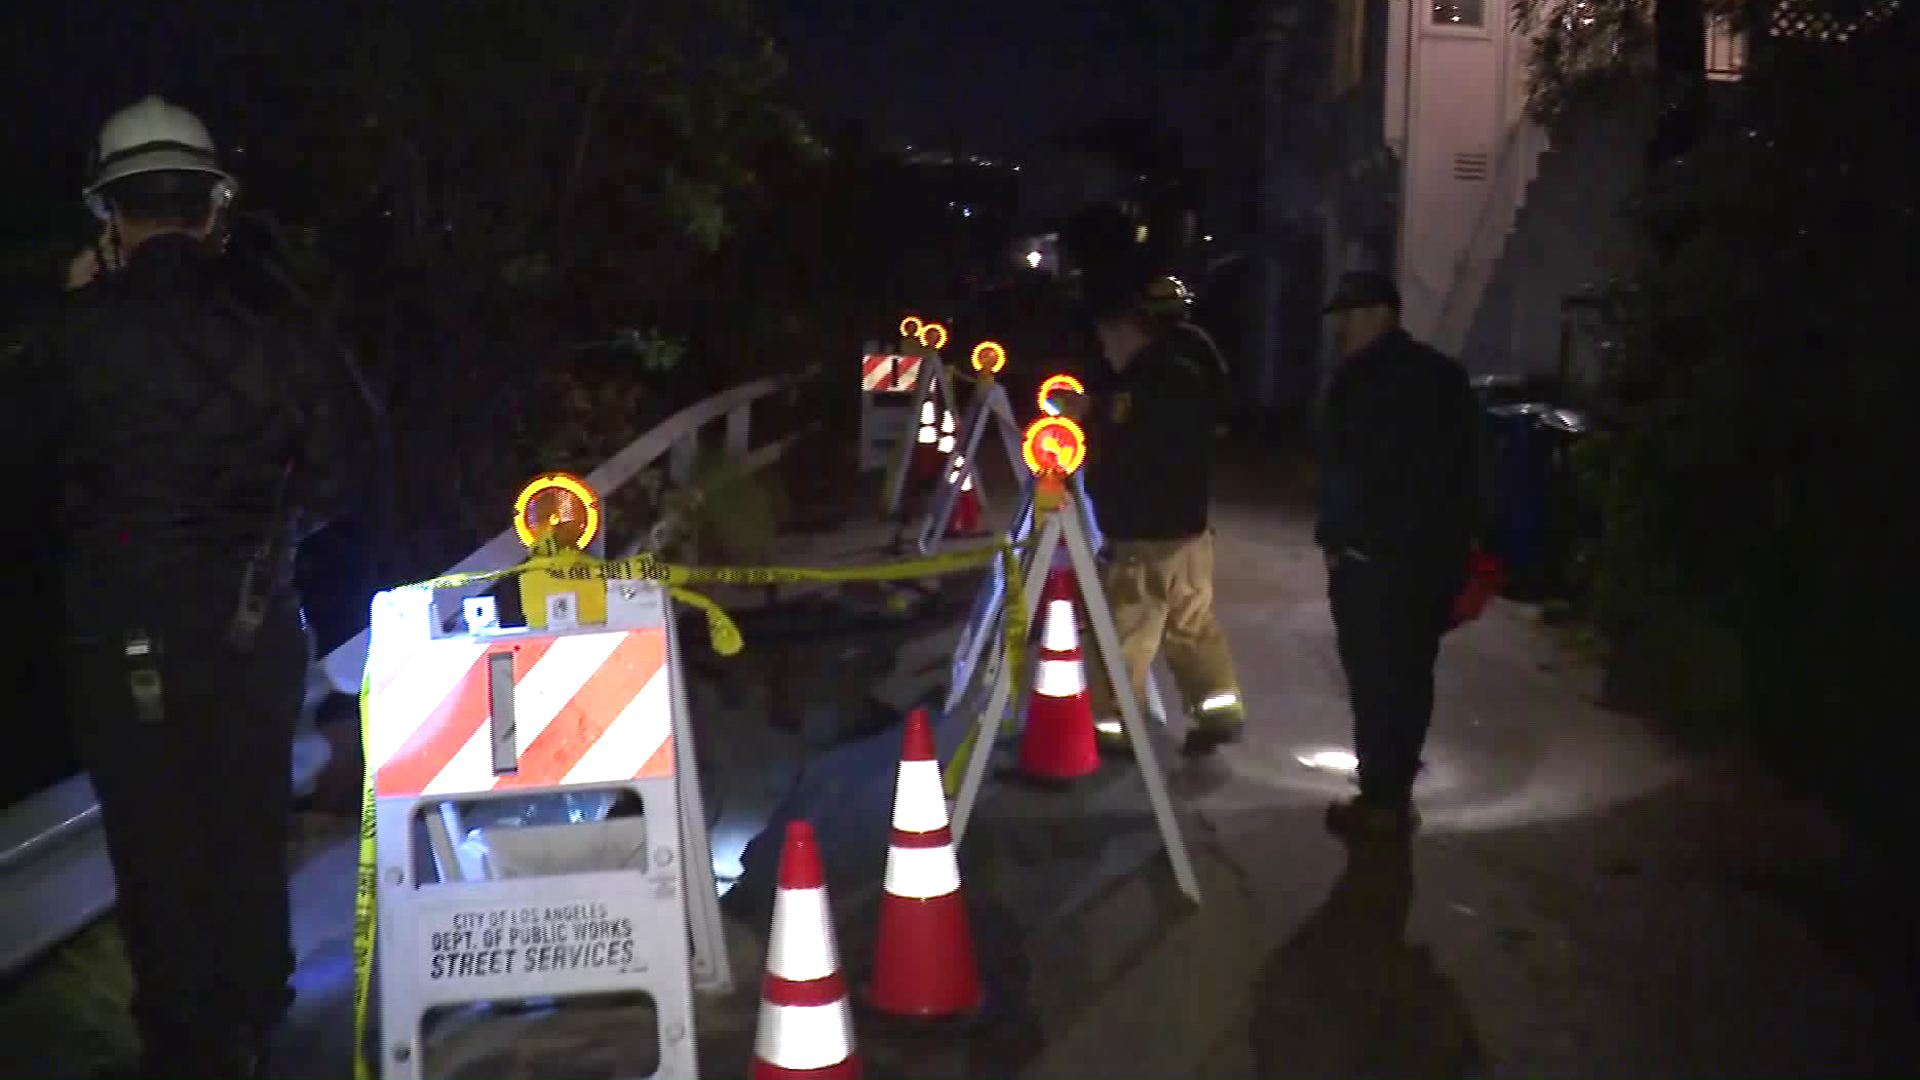 Fire officials respond after a portion of Mannix Drive collapsed in Laurel Canyon and the hillside underneath slid down on Jan. 17, 2019. (Credit: KTLA)